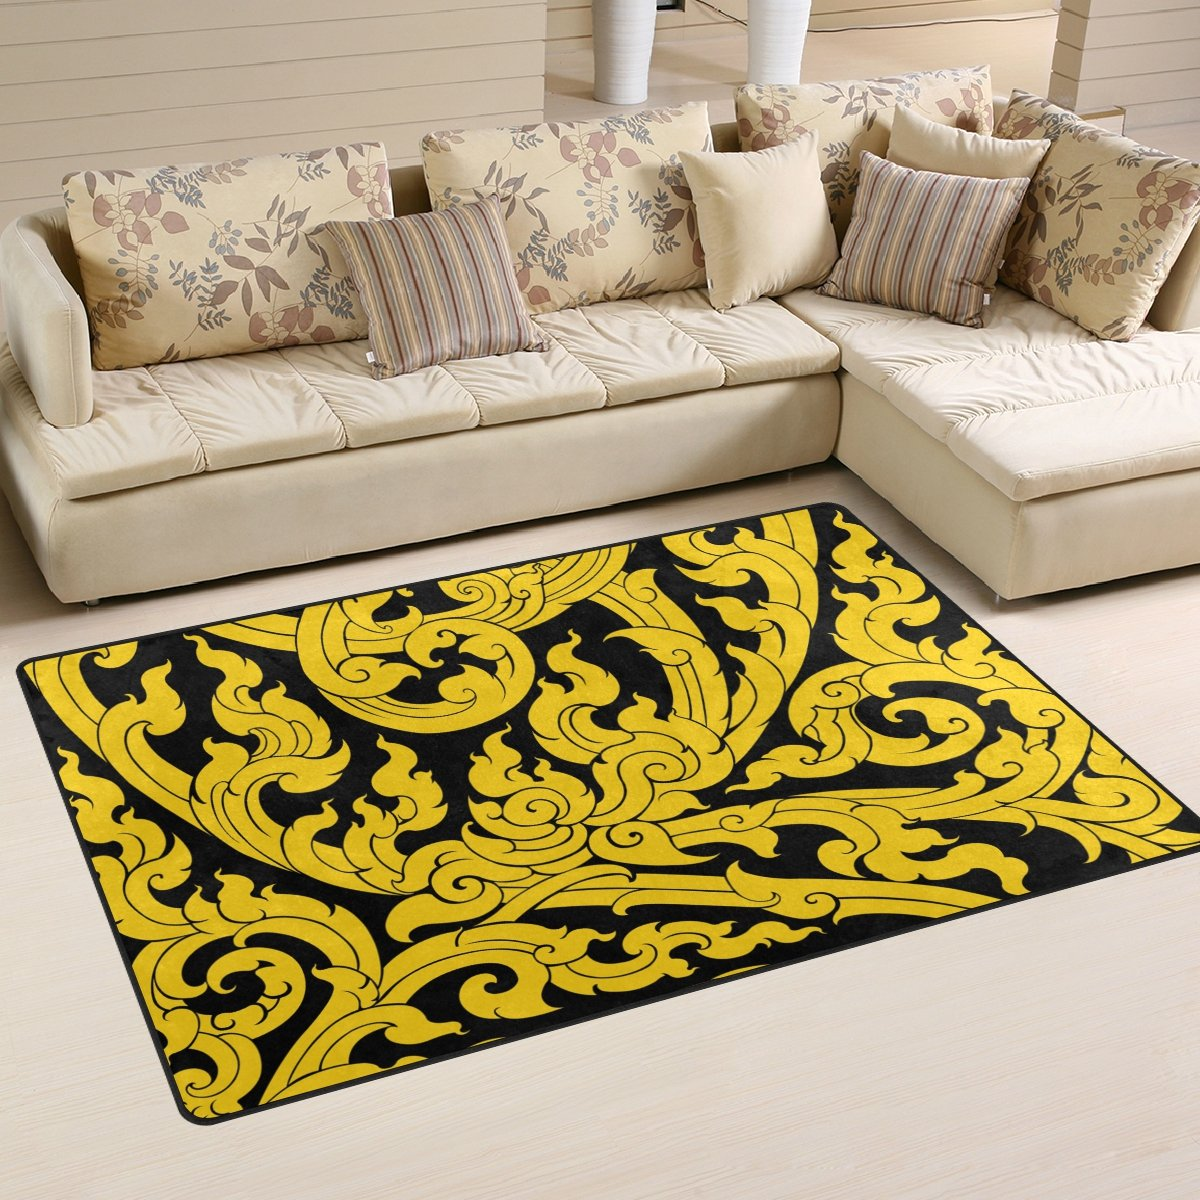 DEYYA Thai Art Tree Leave Non-slip Area Rug Rugs for Living Room Decoration 60 x 39 Inch by DEYYA